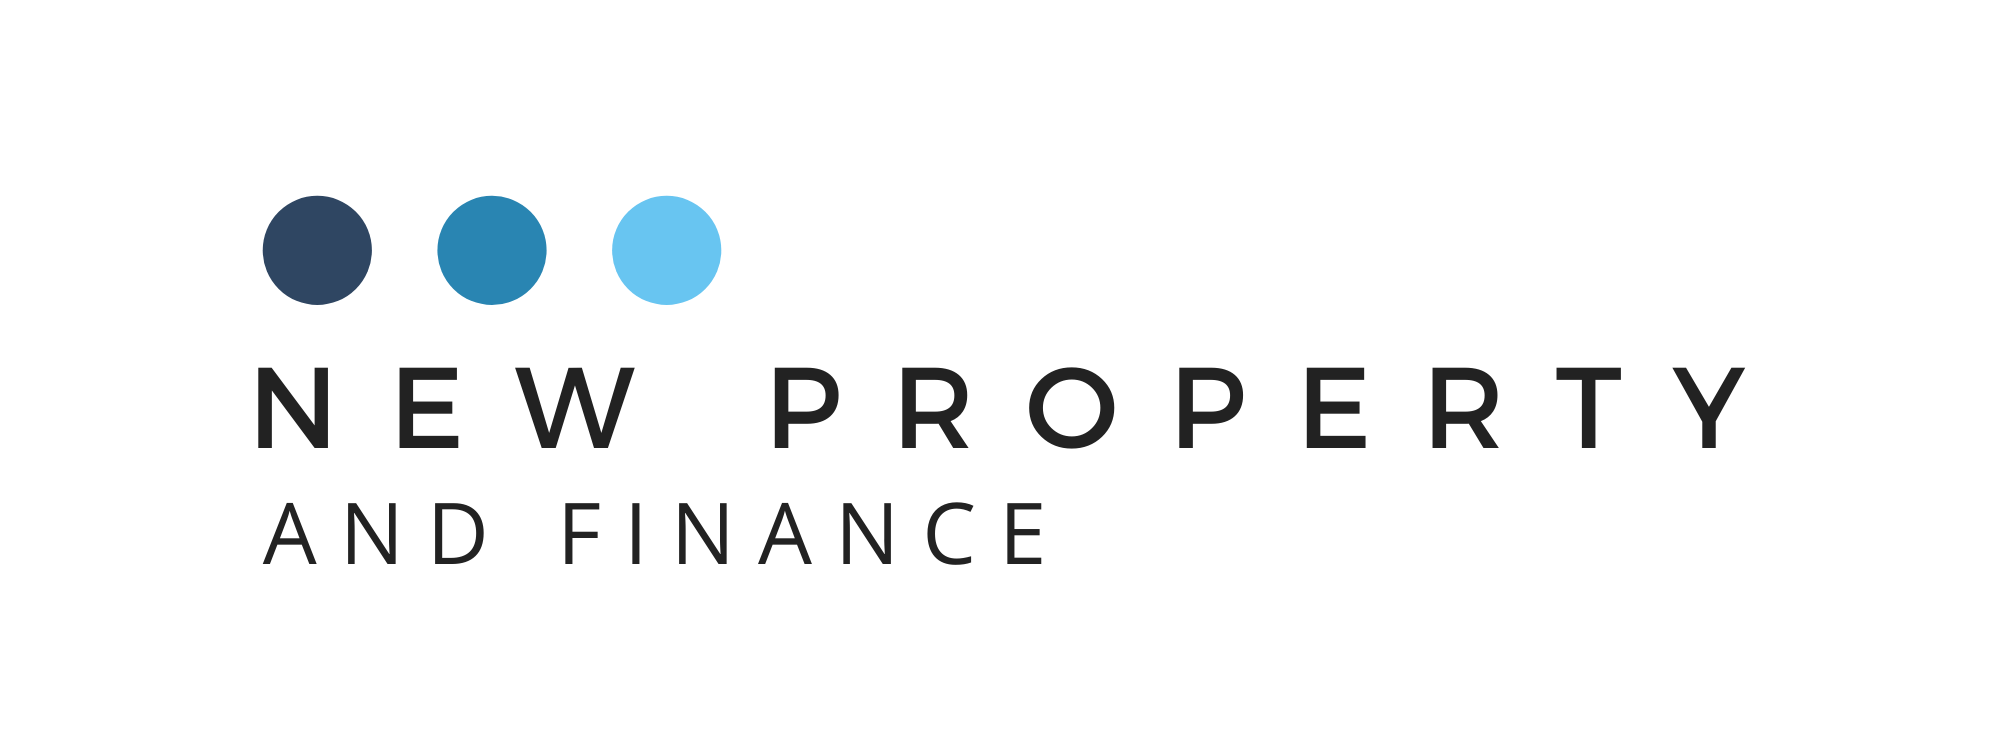 New Property and Finance Pty Ltd Logo Clear